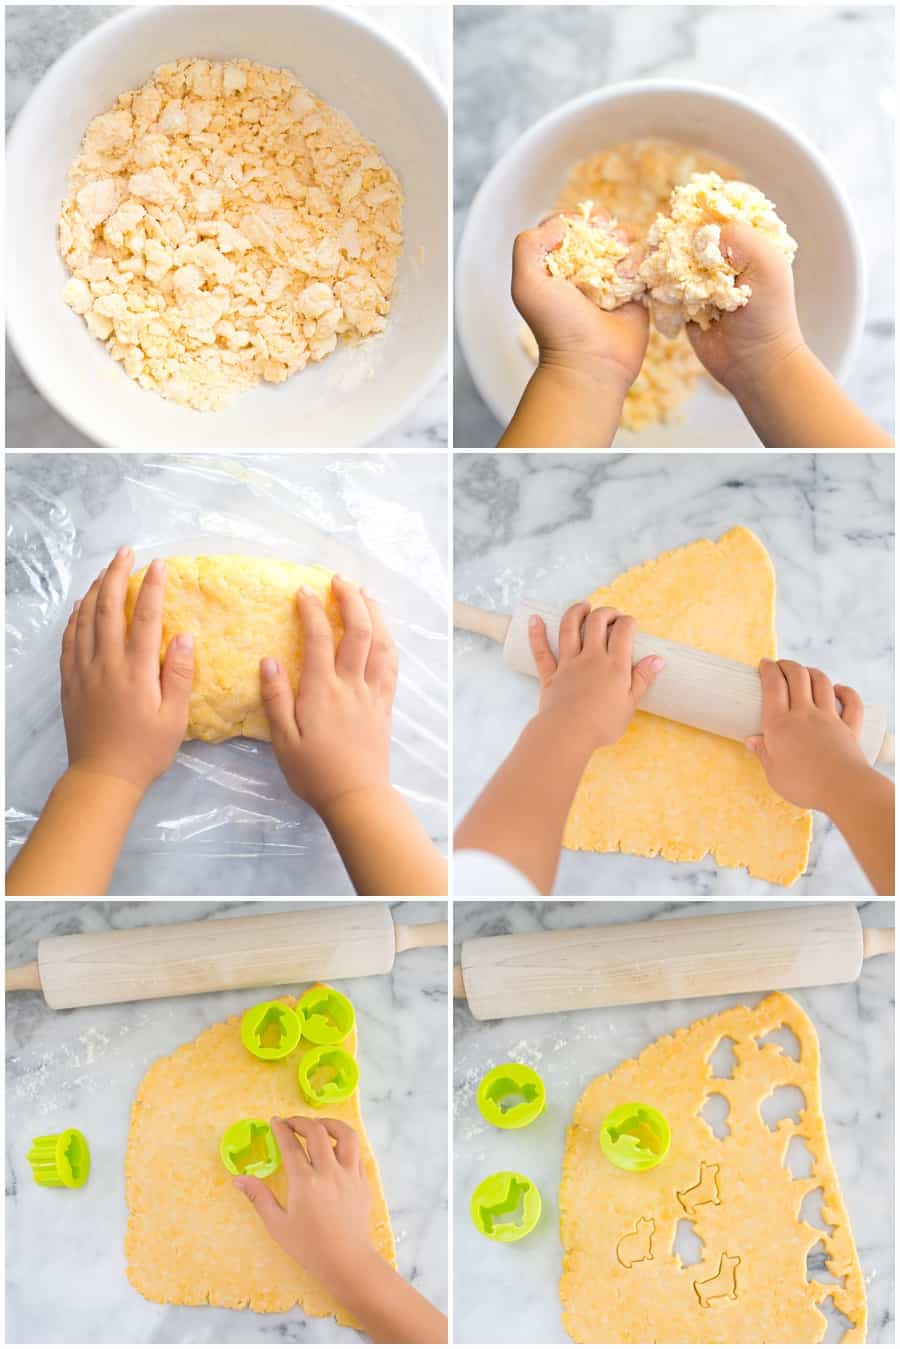 Step by step process photos of how to make homemade cheese animal crackers